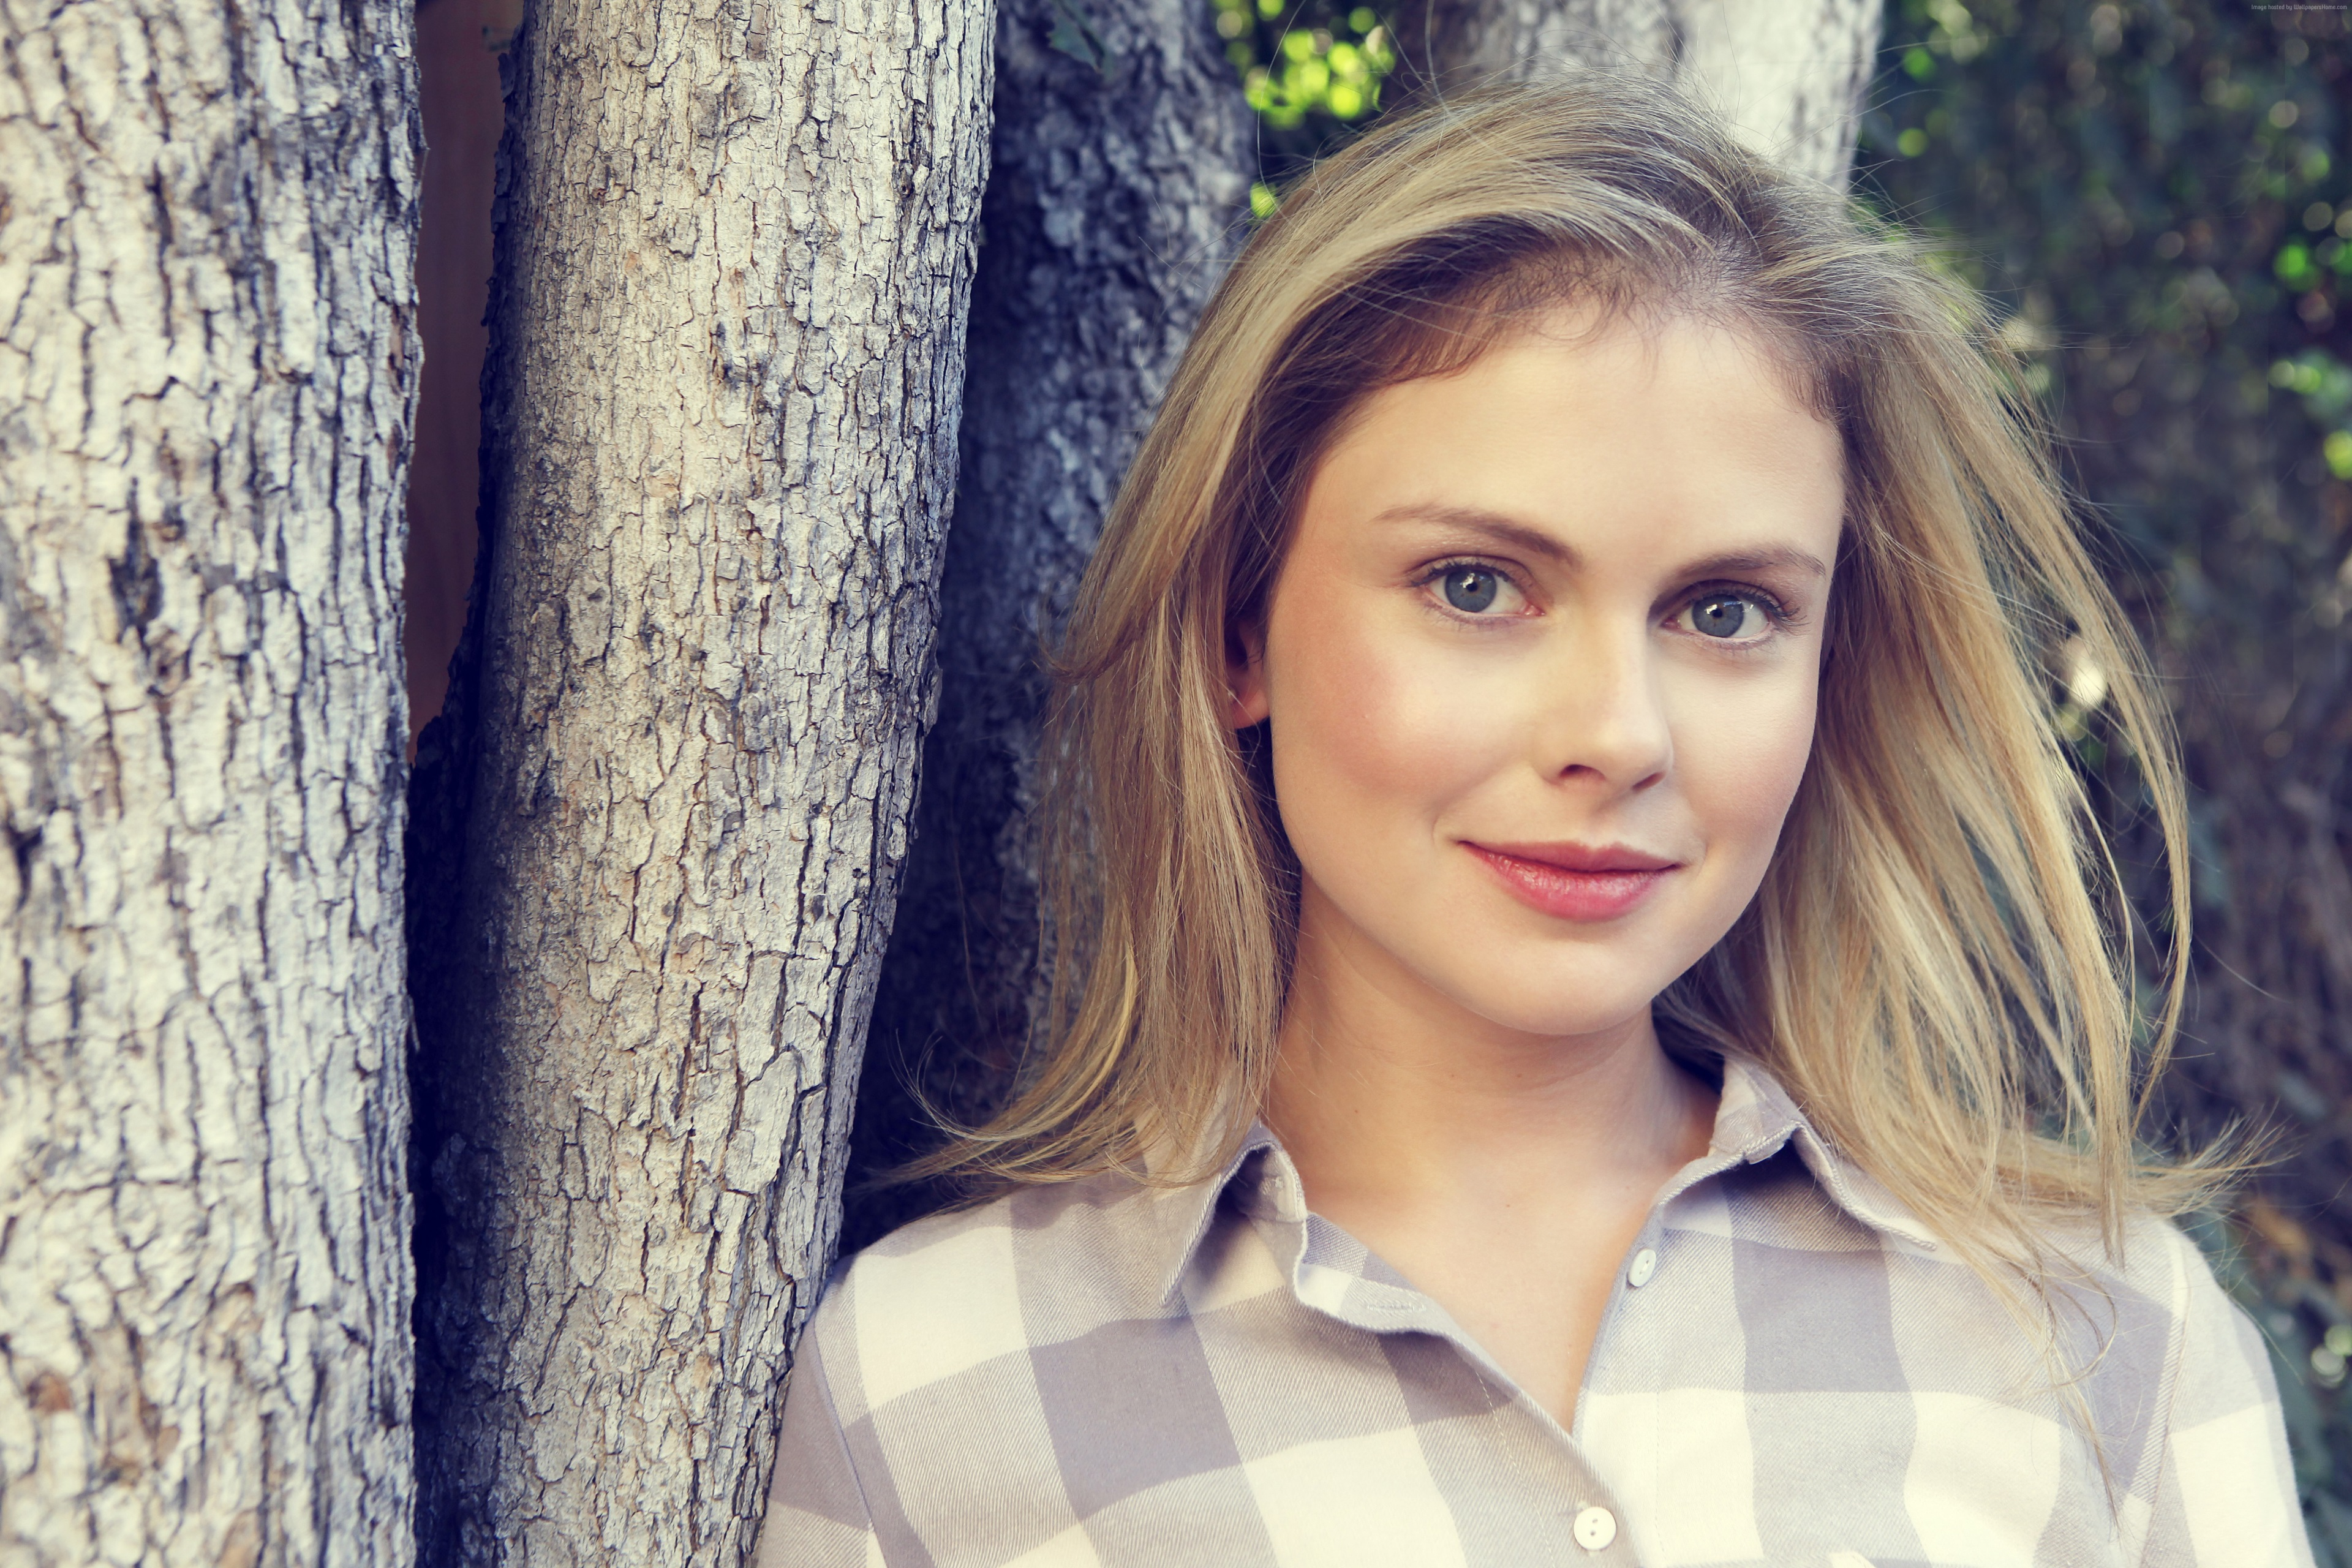 3840x2560 - Rose McIver Wallpapers 13